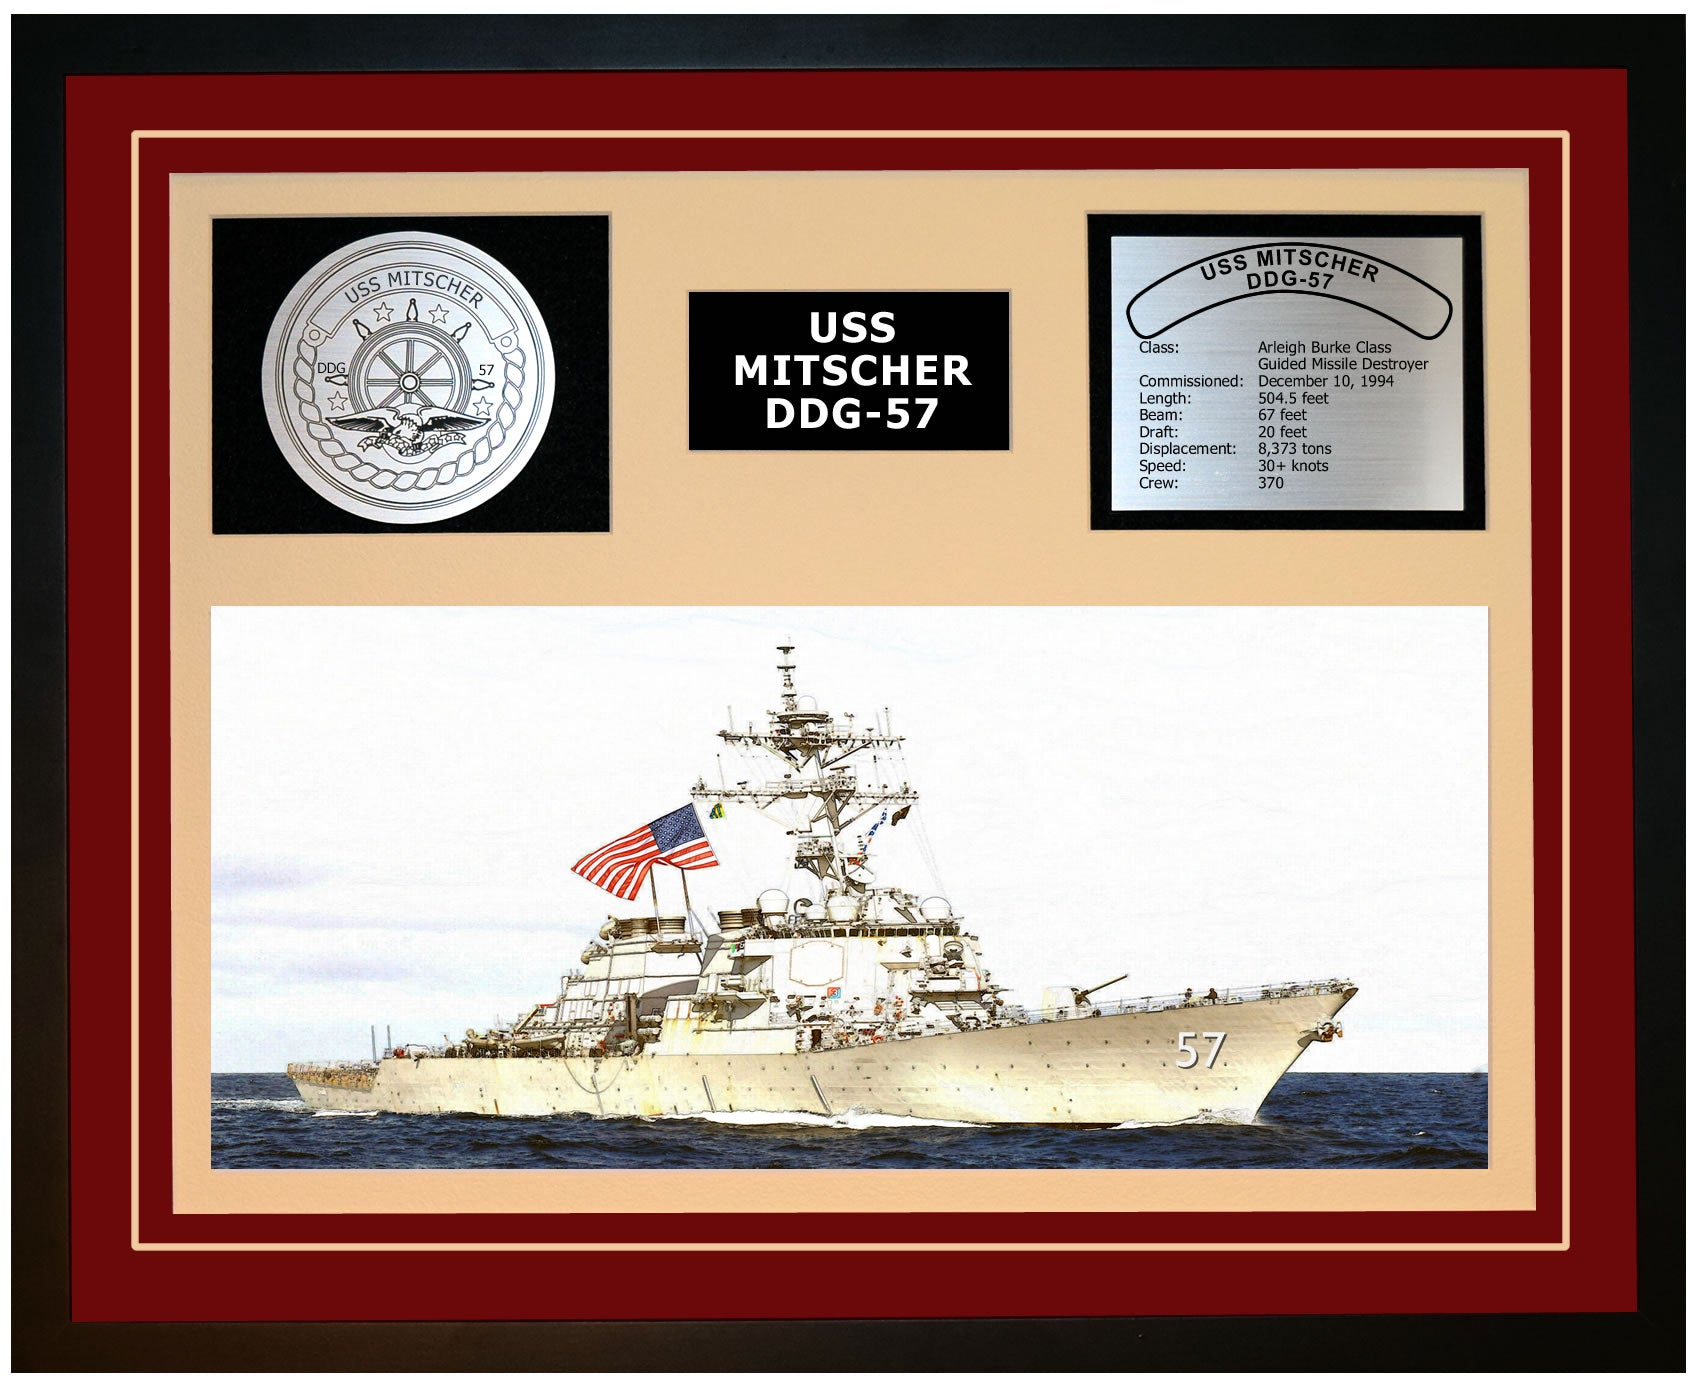 USS MITSCHER DDG-57 Framed Navy Ship Display Burgundy